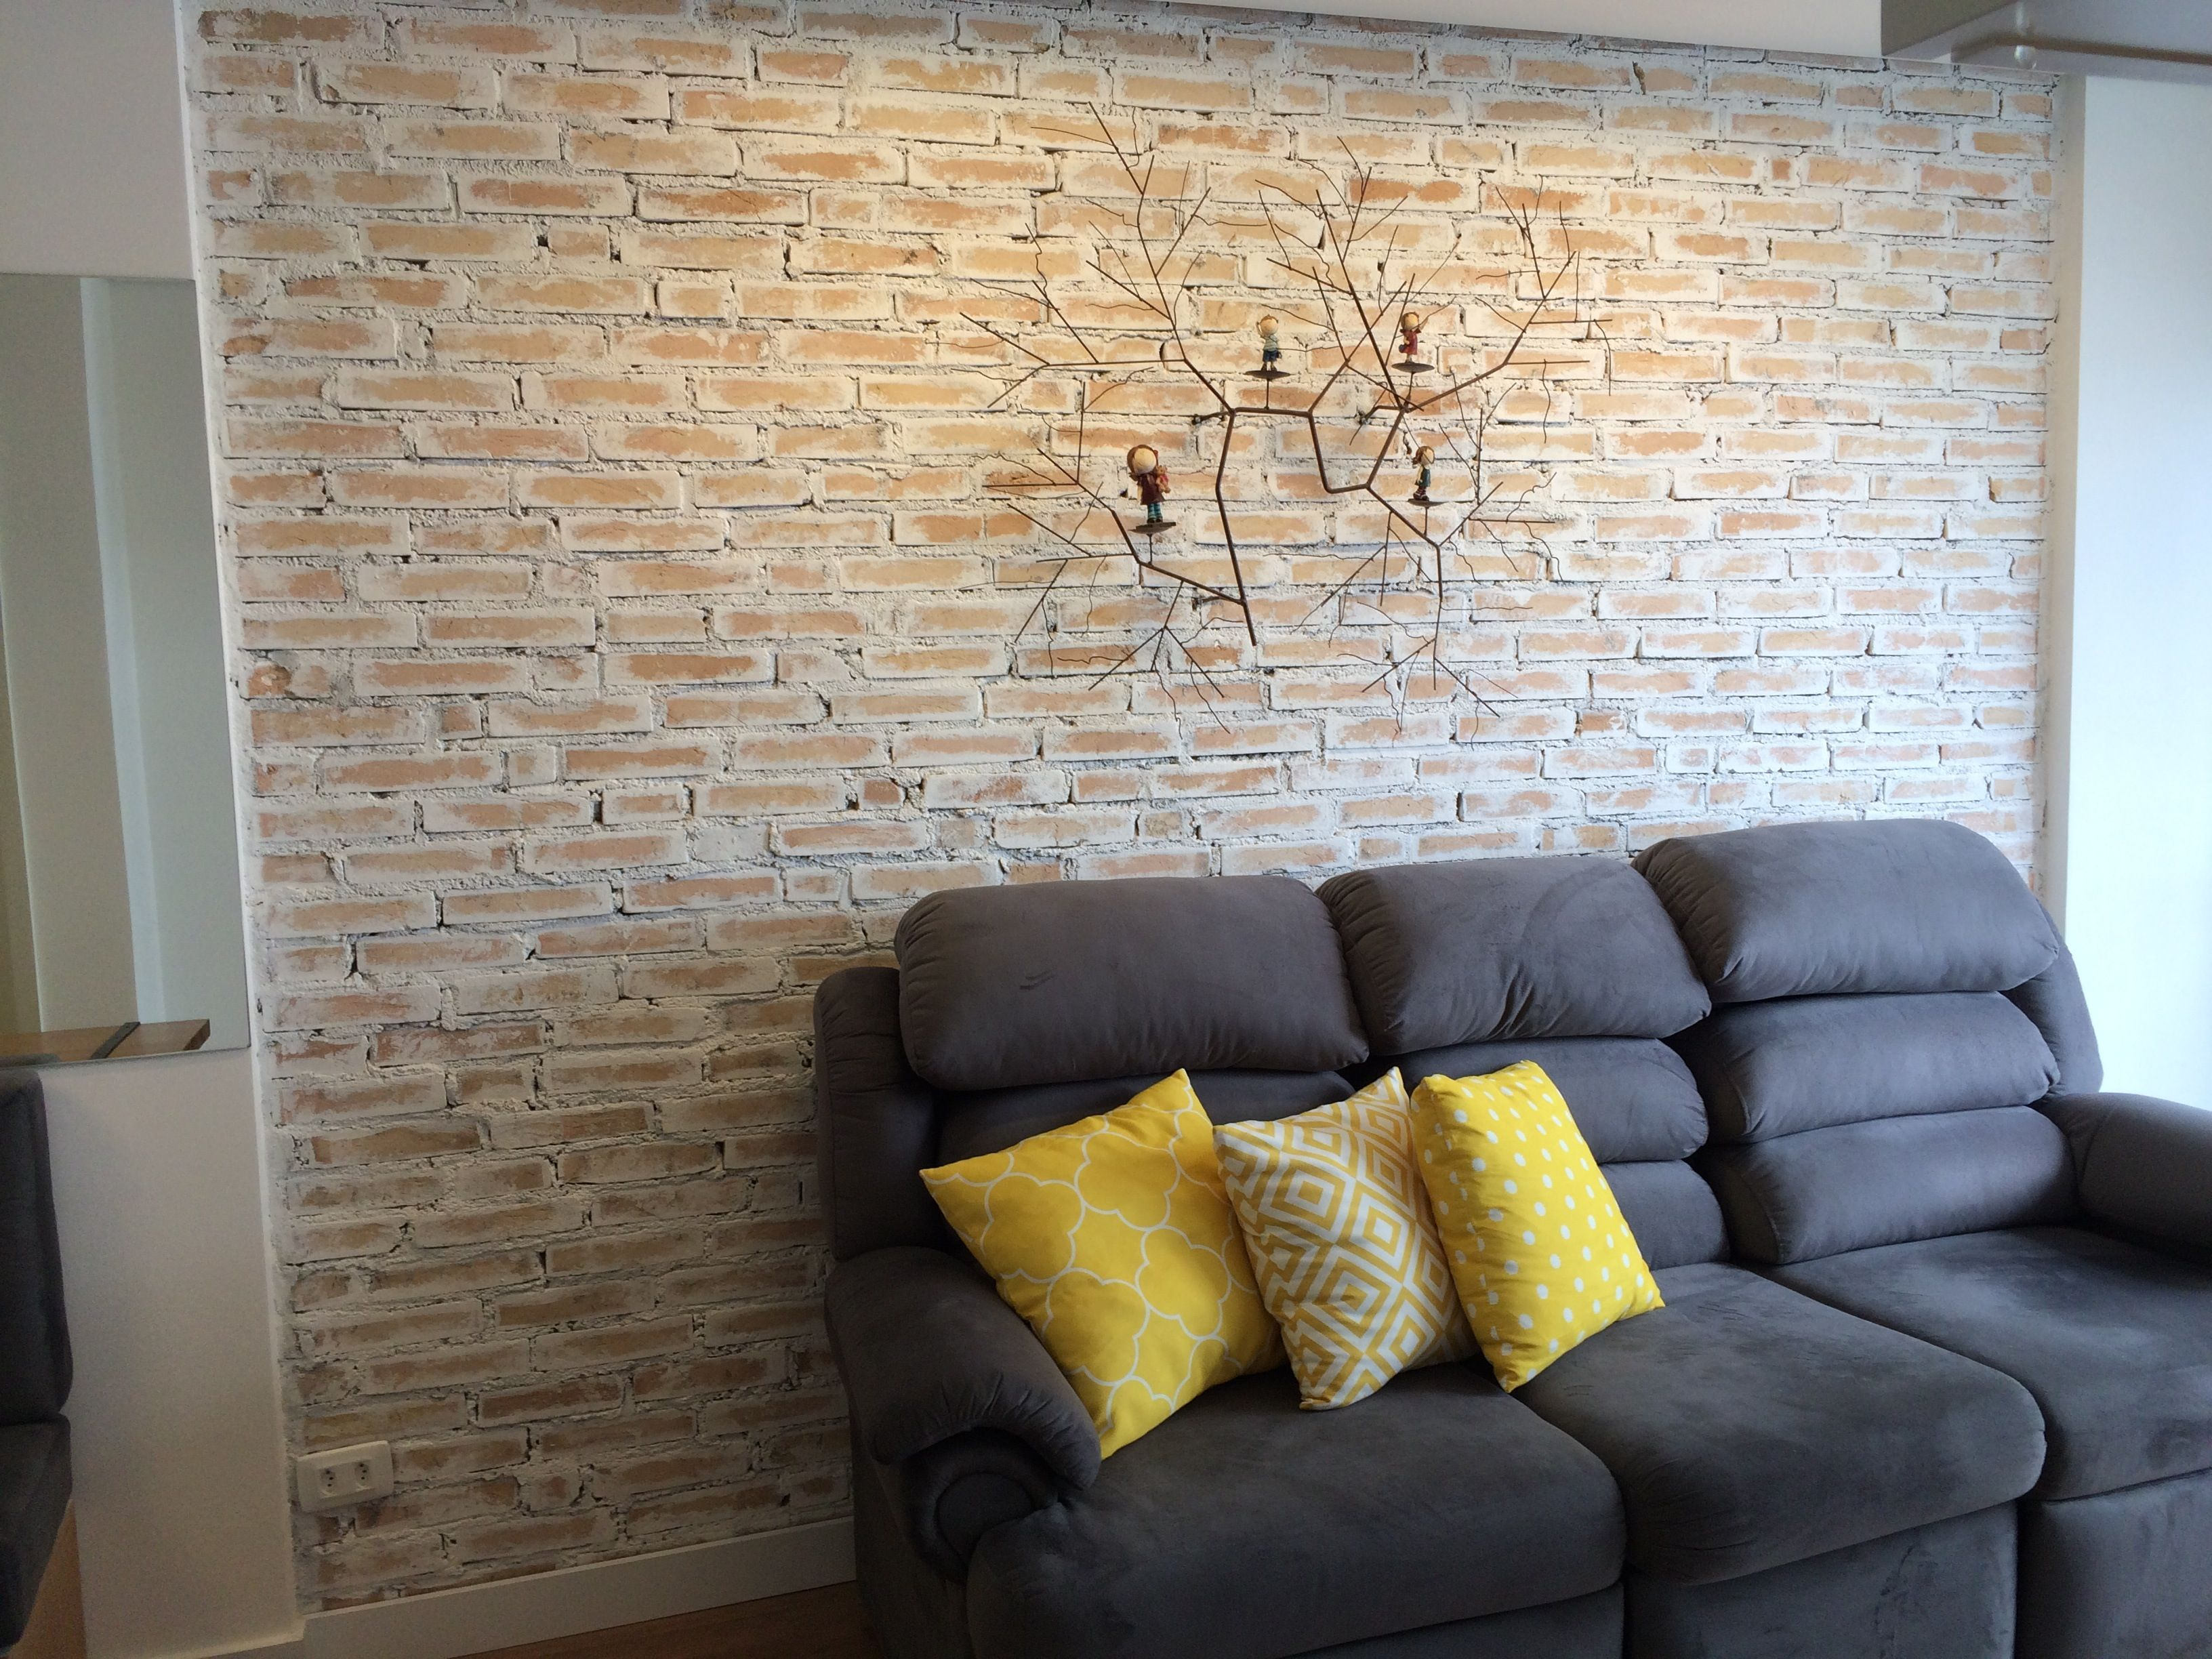 Whitewashed Exposed Brick Wall Project By Architect Maria Claudia Correa Https Www Facebook Com Mariaclaudiacor Decor Home Decor Exposed Brick